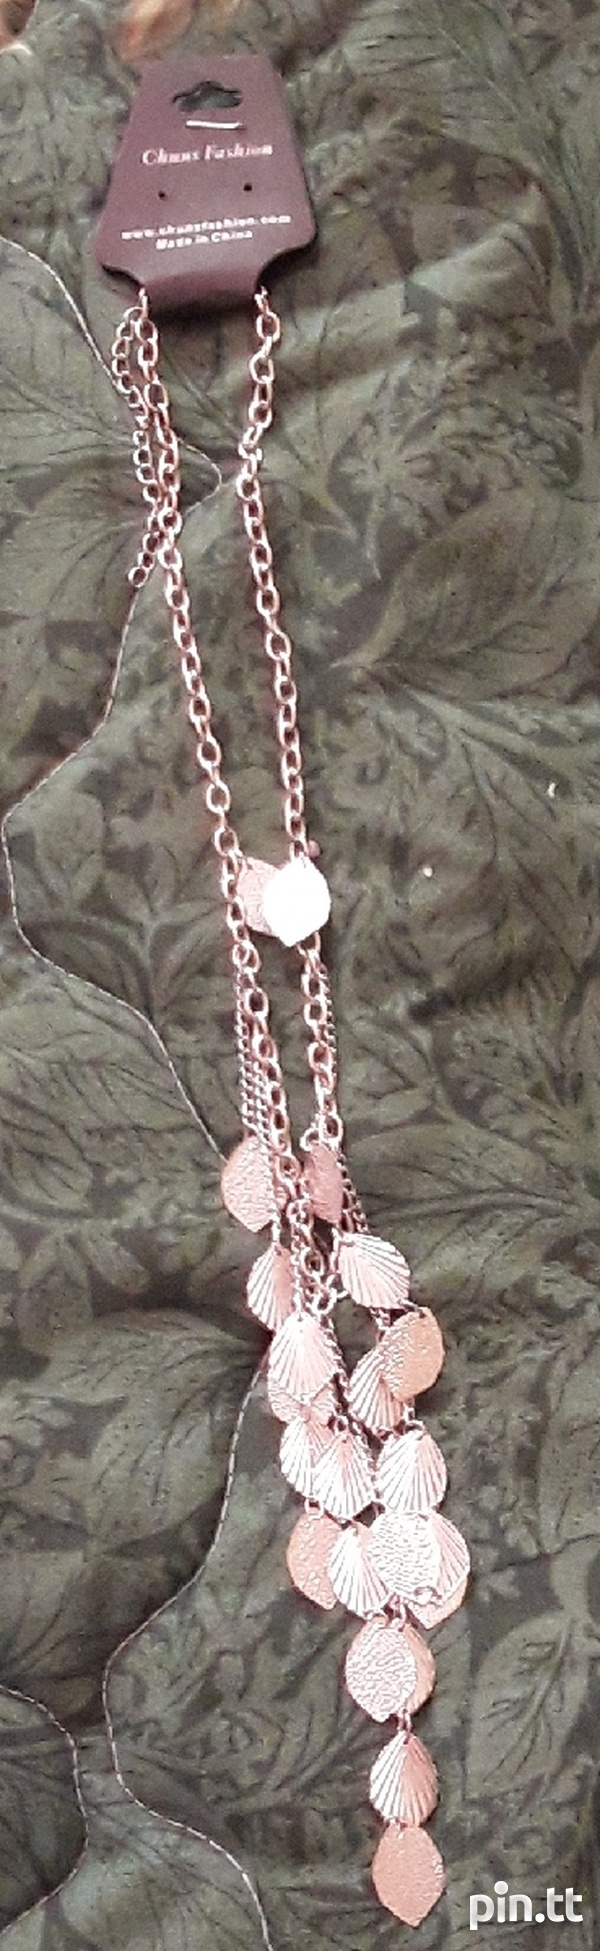 Silver Necklaces Costume Jewellery-2